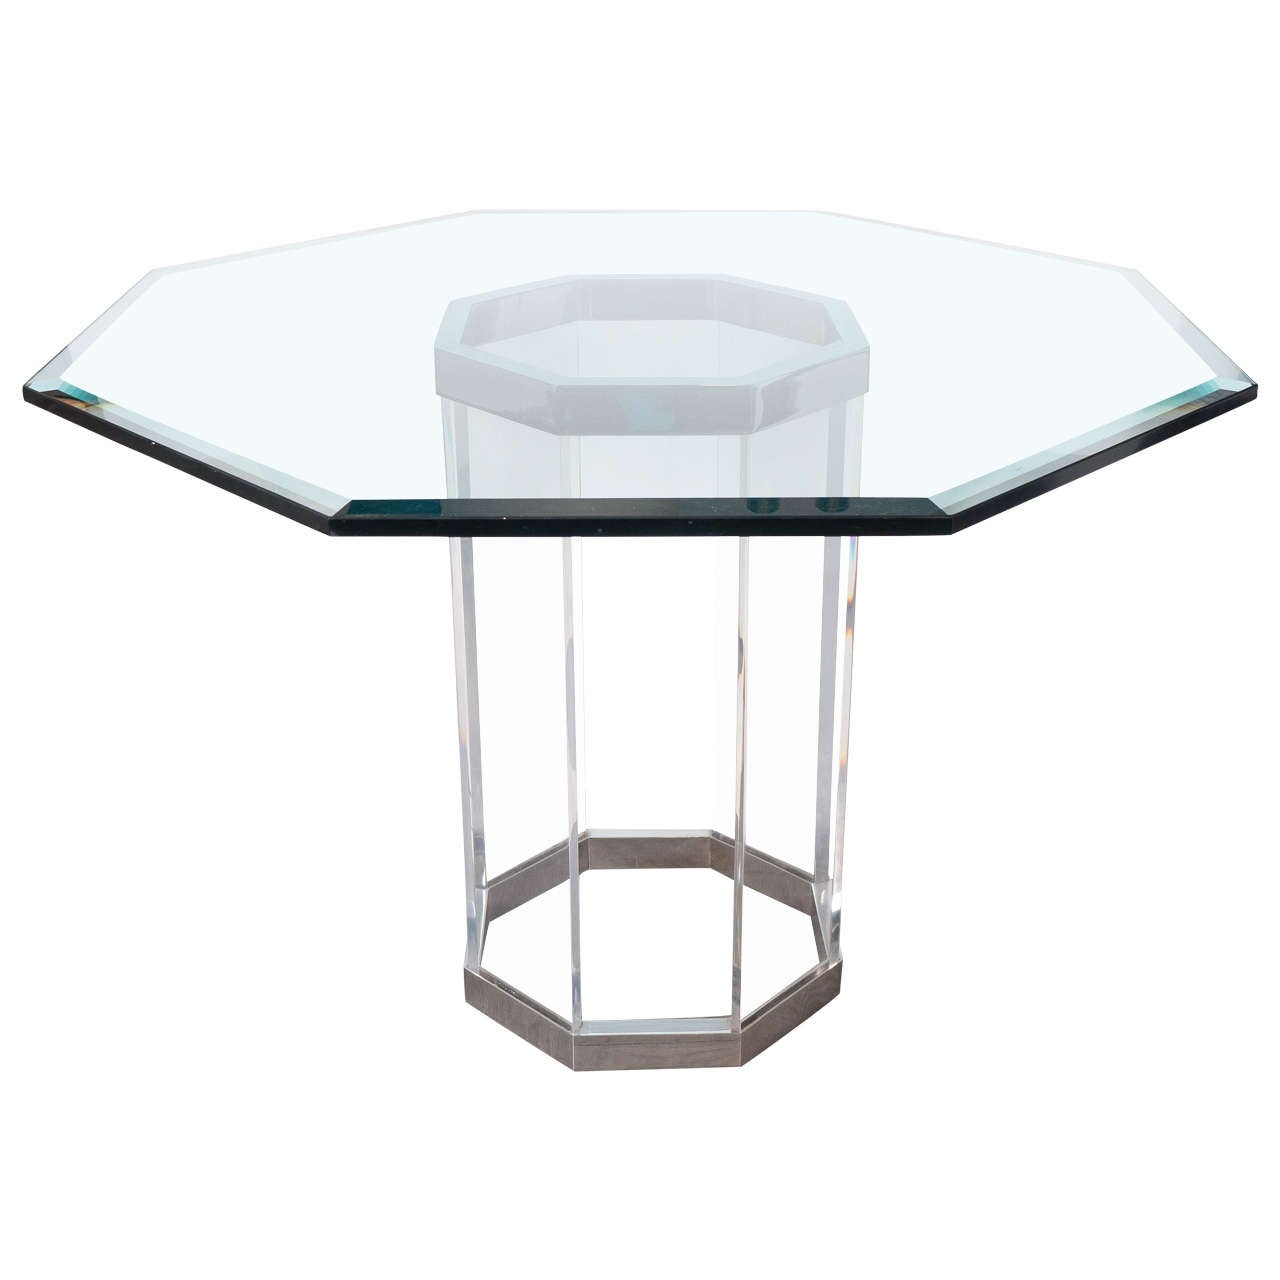 Luxe Mid Century Modernist Octagonal Dining Table In Chrome, Lucite And Glass  For Sale